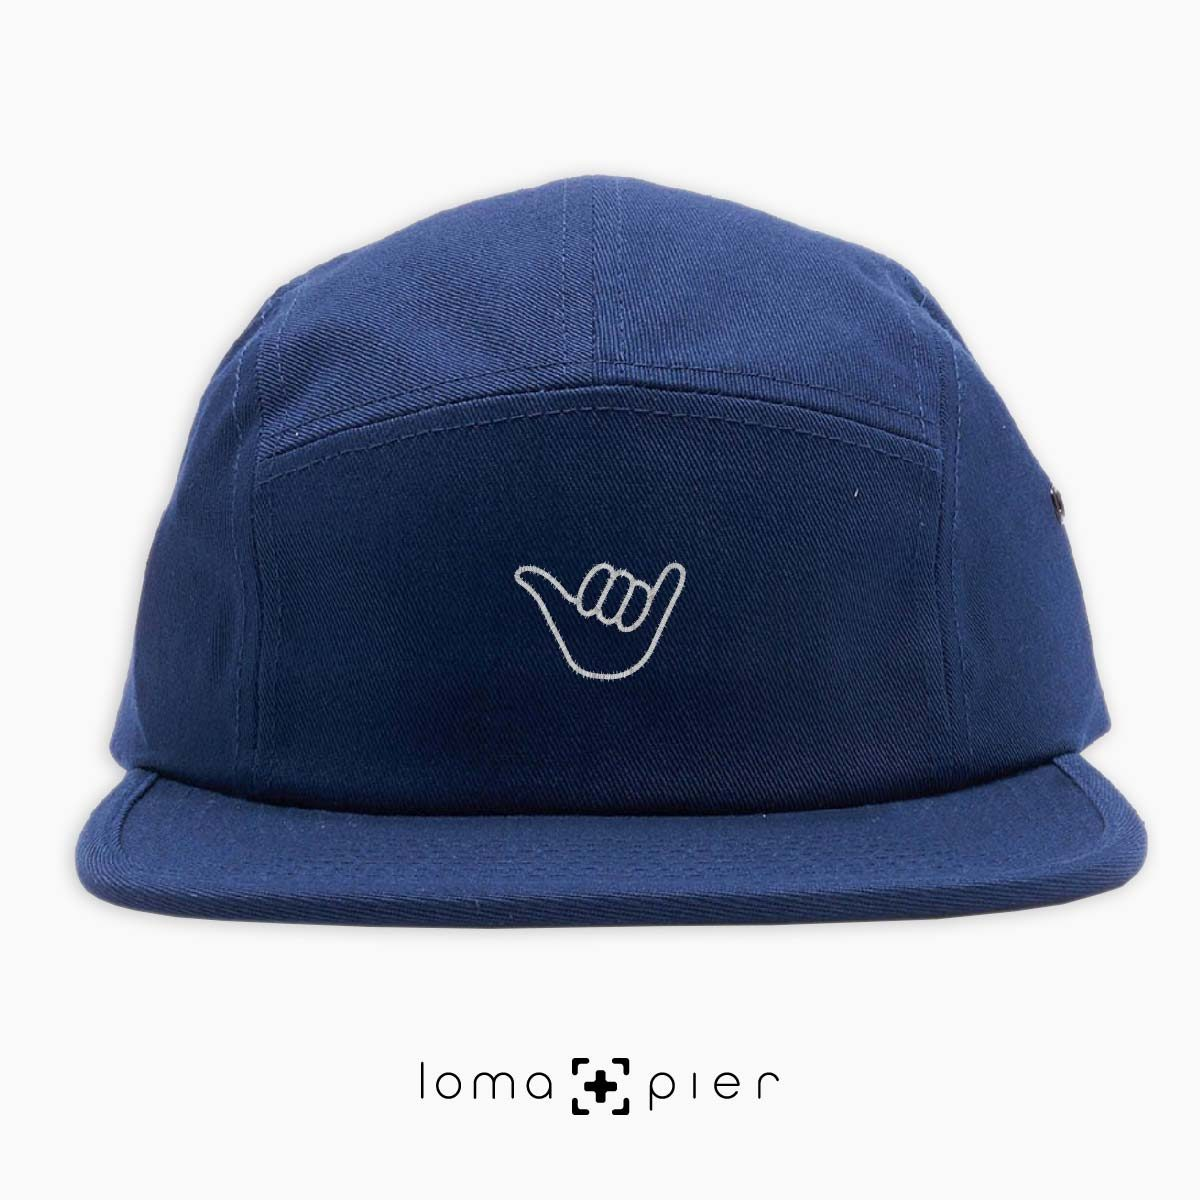 HANG LOOSE icon embroidered on a navy cotton 5-panel hat by loma+pier hat store